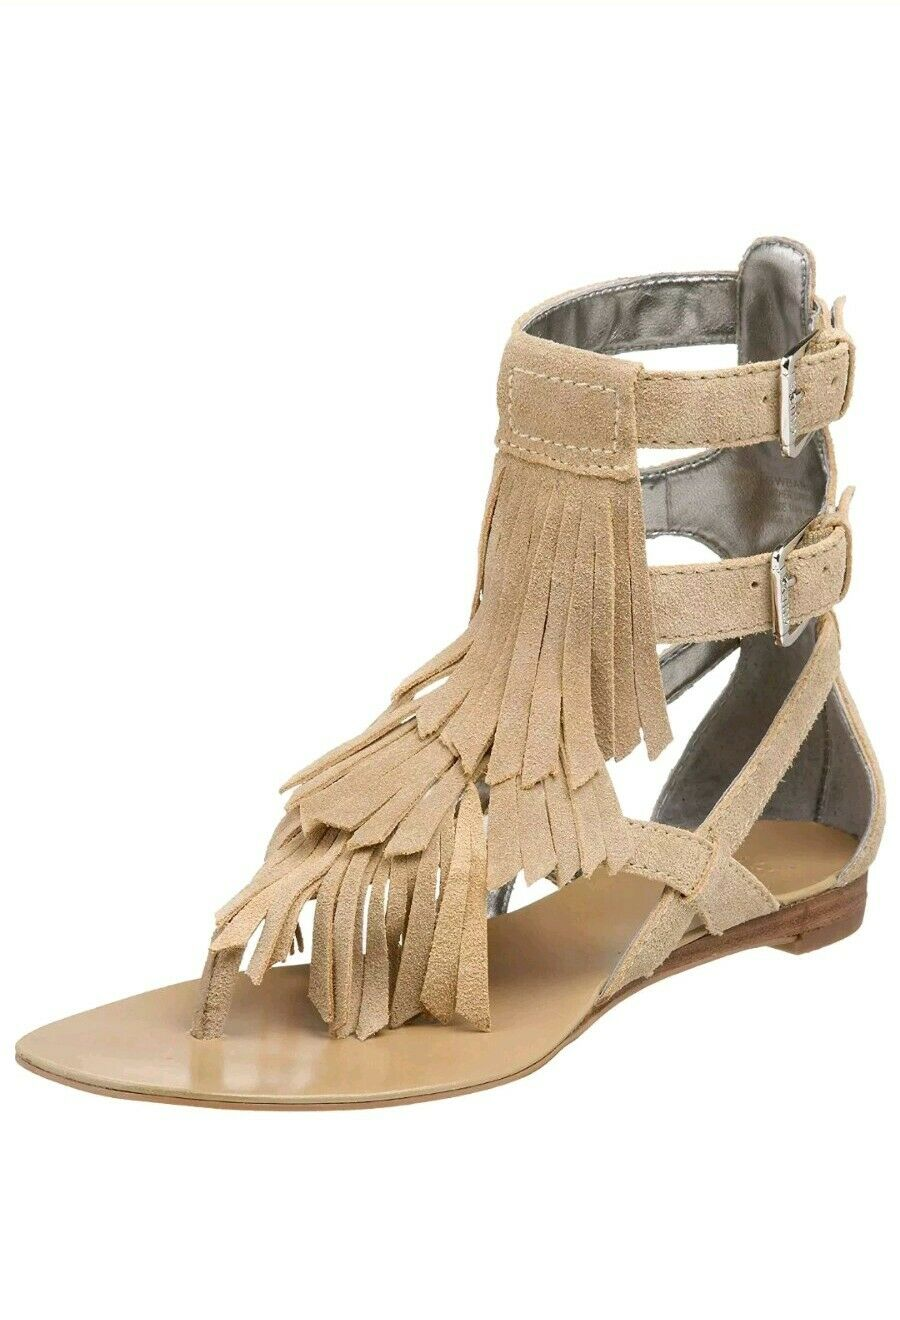 NEW Guess Women's Bari Flat Suede Sandal Fringe Gladiator 7.5 Wow